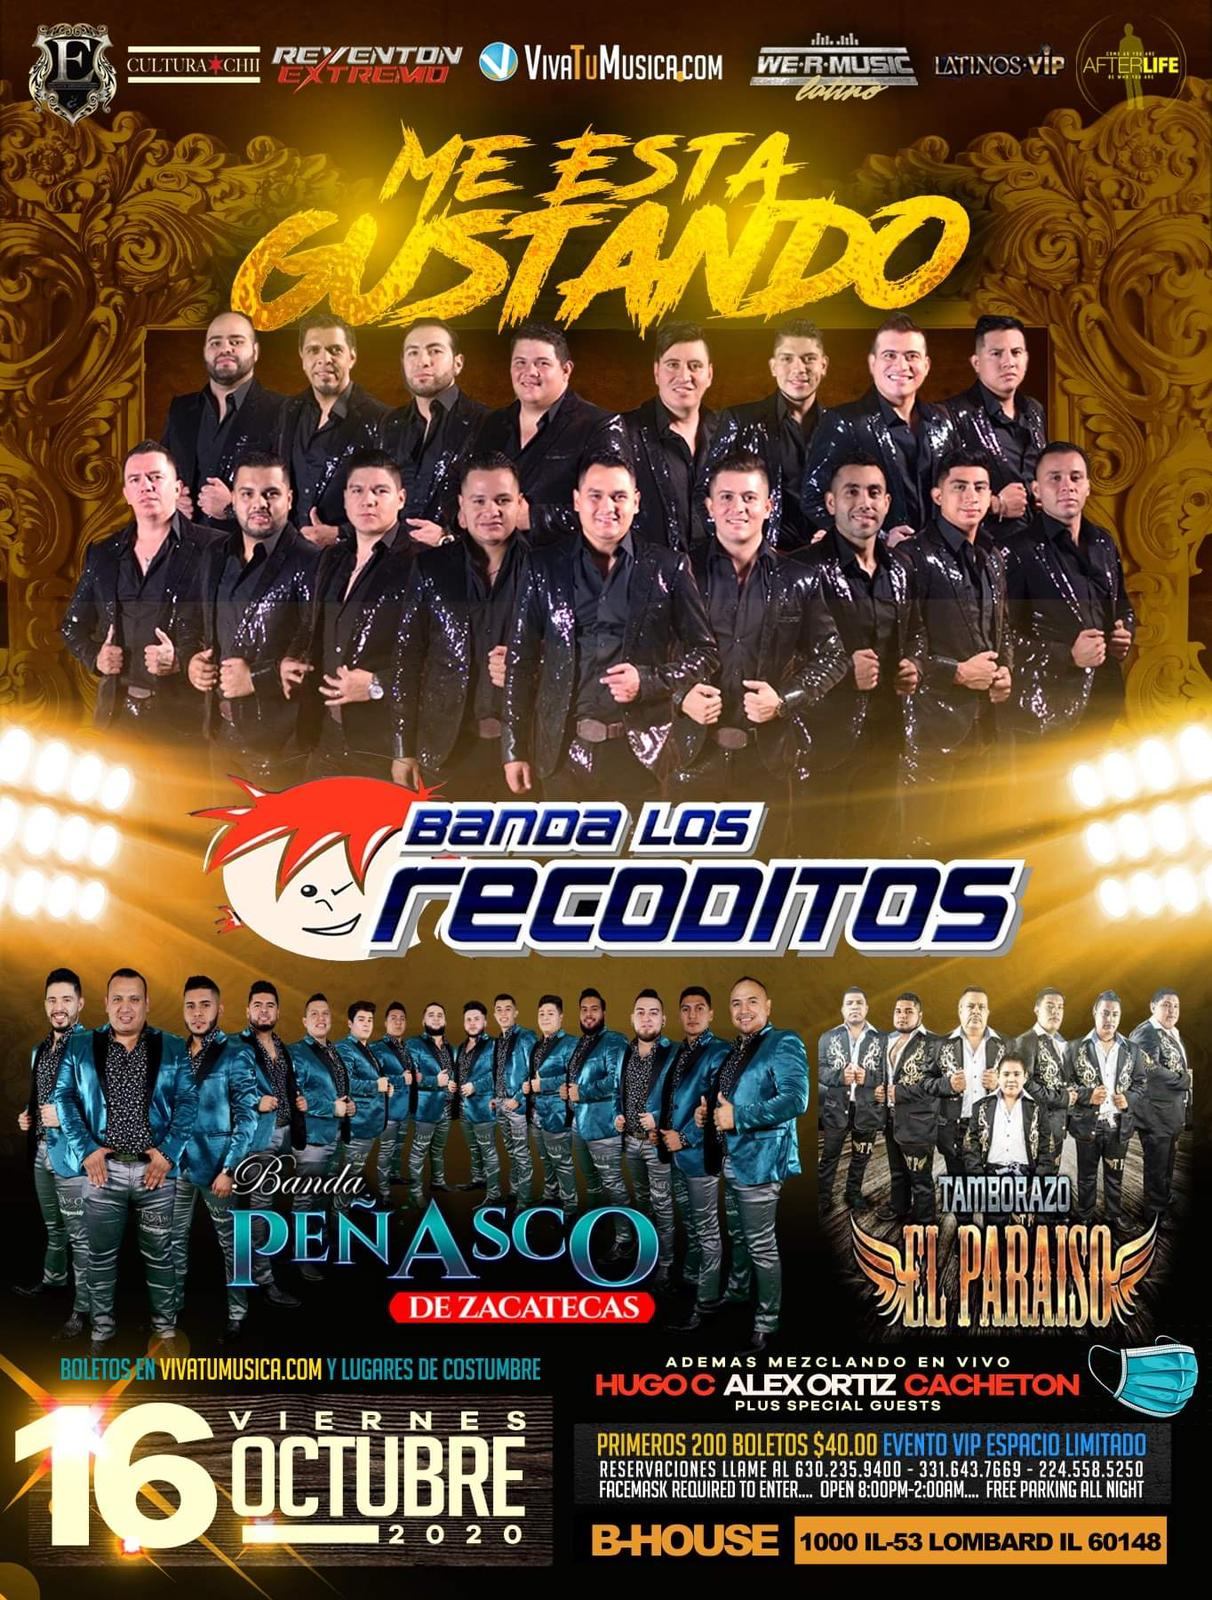 Los Recoditos - B-House @ Lombard, IL | Elkhorn | Wisconsin | United States